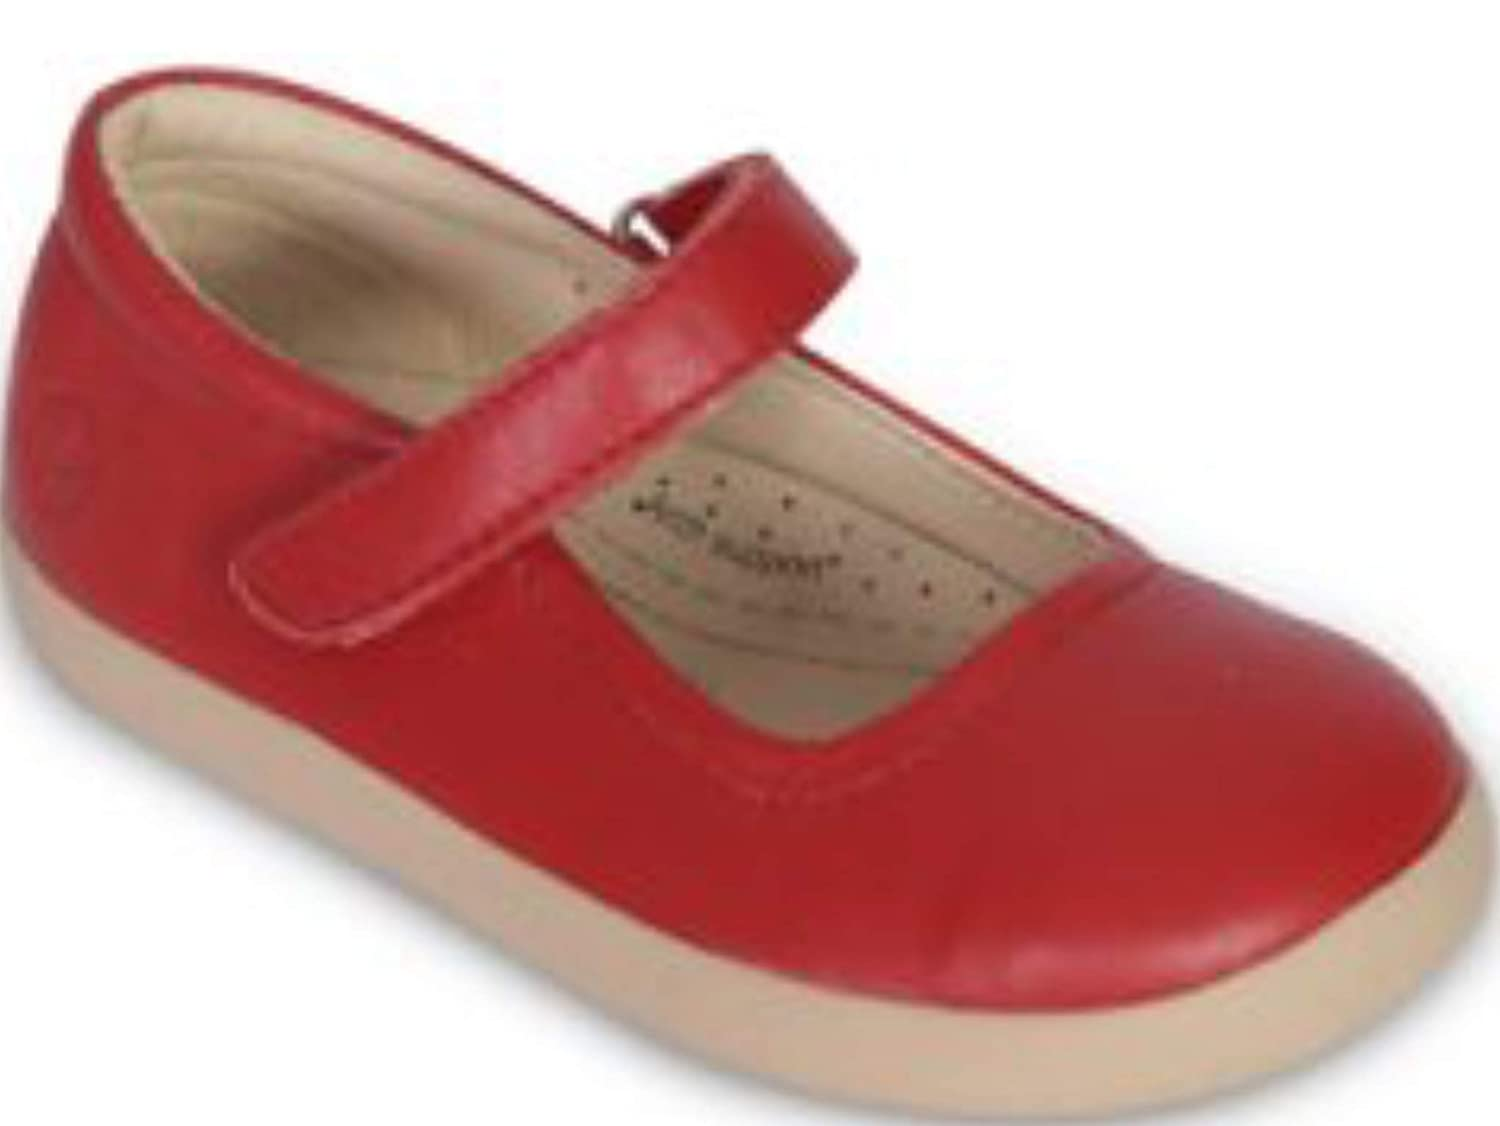 Old Soles Miss Jane Mary Jane Red EU 24 US Size 7.5